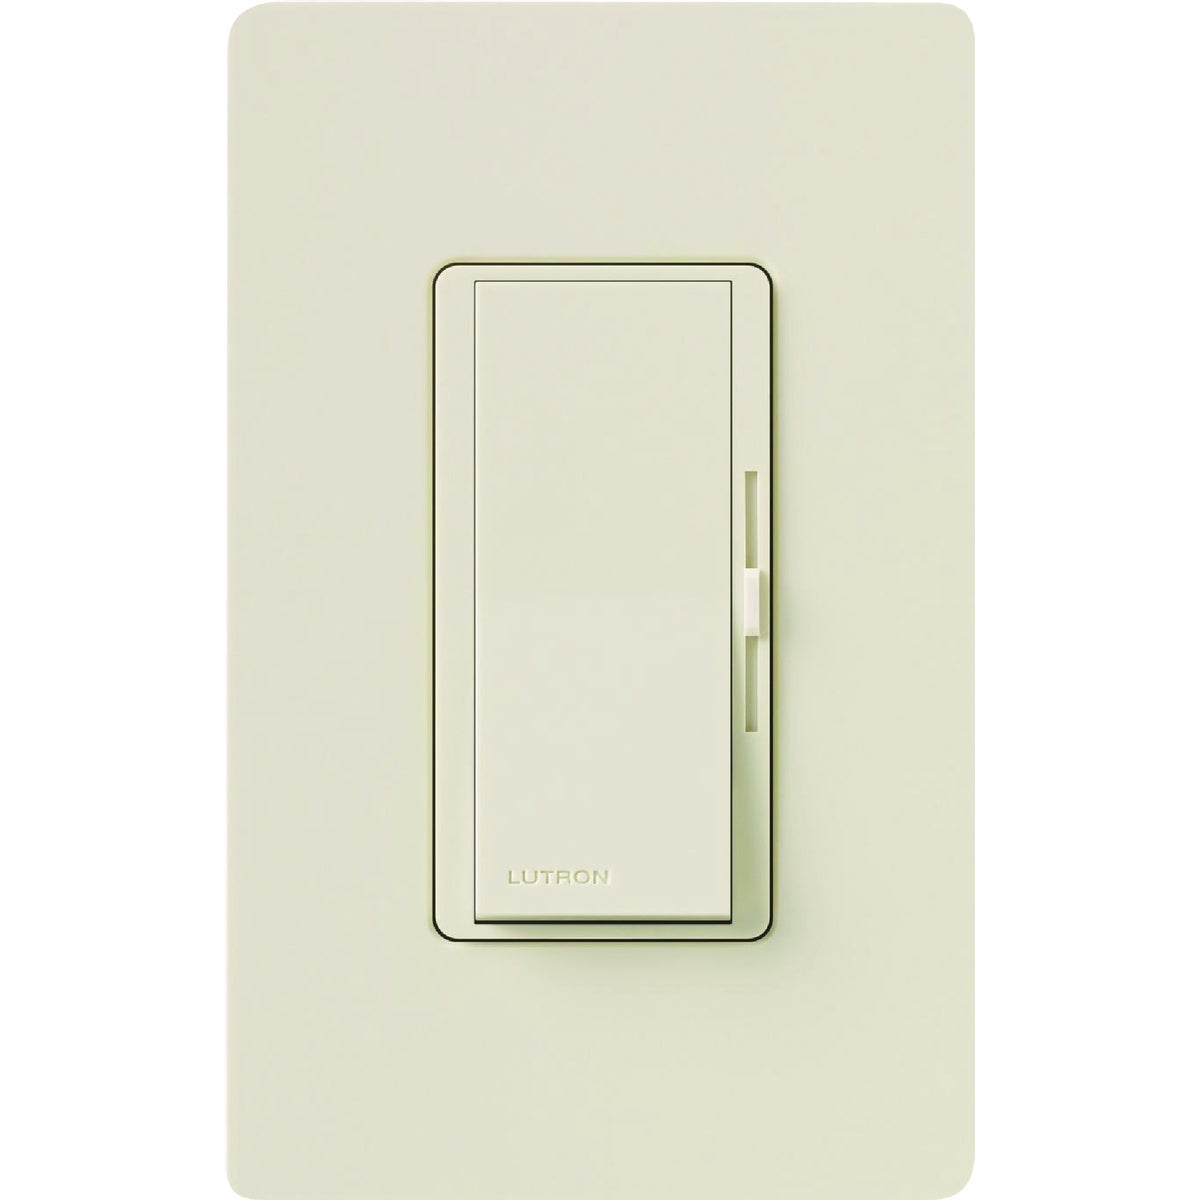 LT ALM S/P SLIDE DIMMER - DVW-600PH-LA by Lutron Elect Co Inc